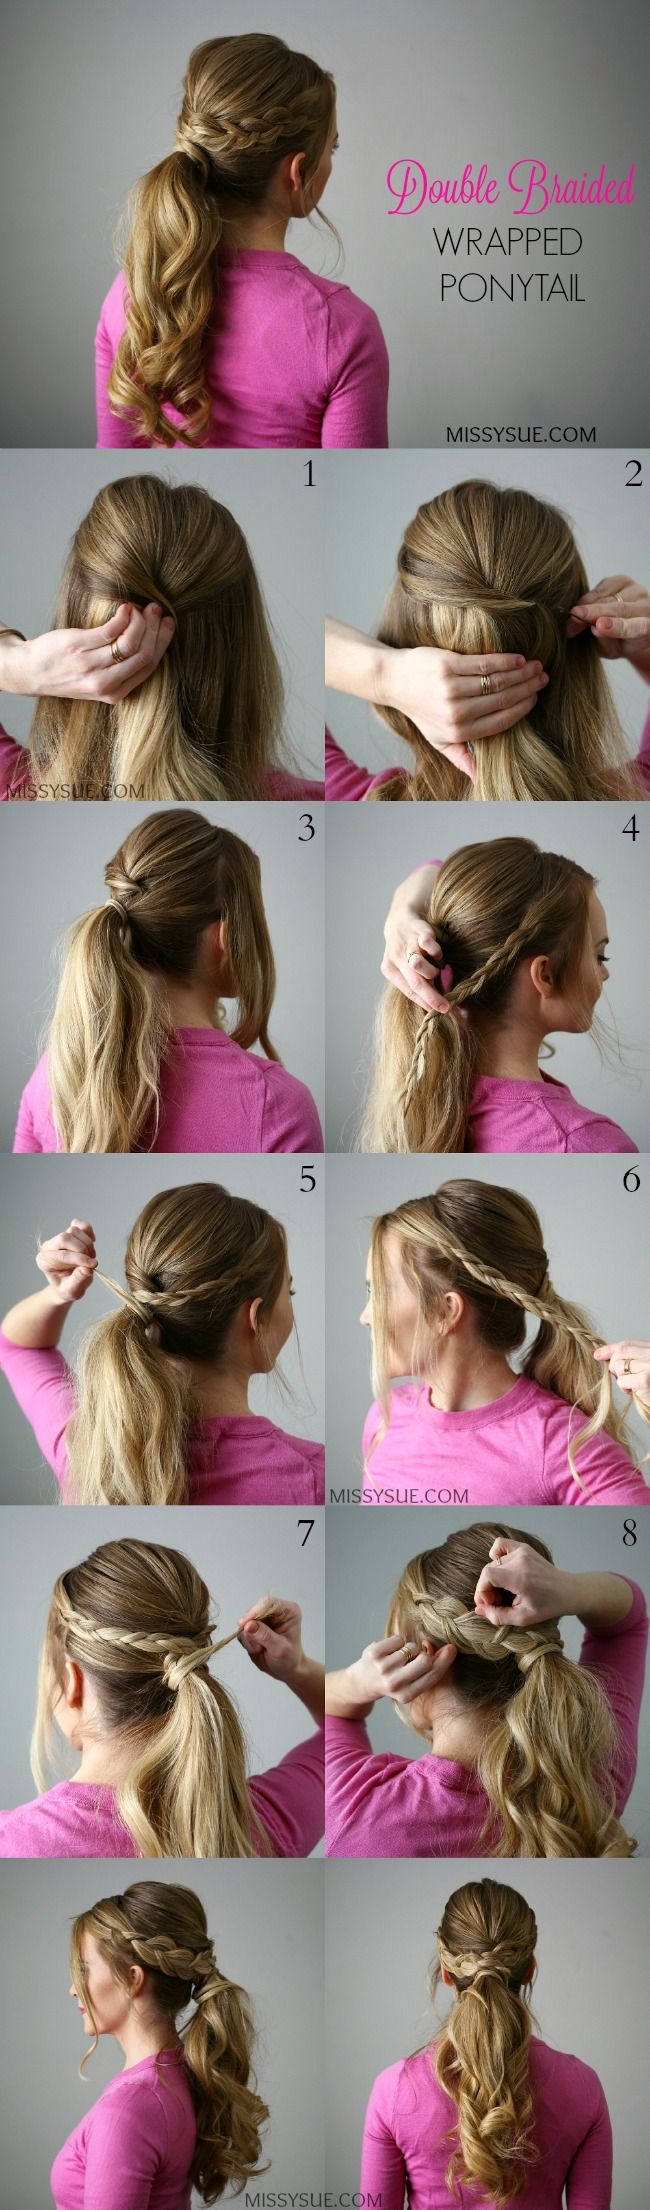 Adding some pretty braids to a traditional ponytail is a quick and